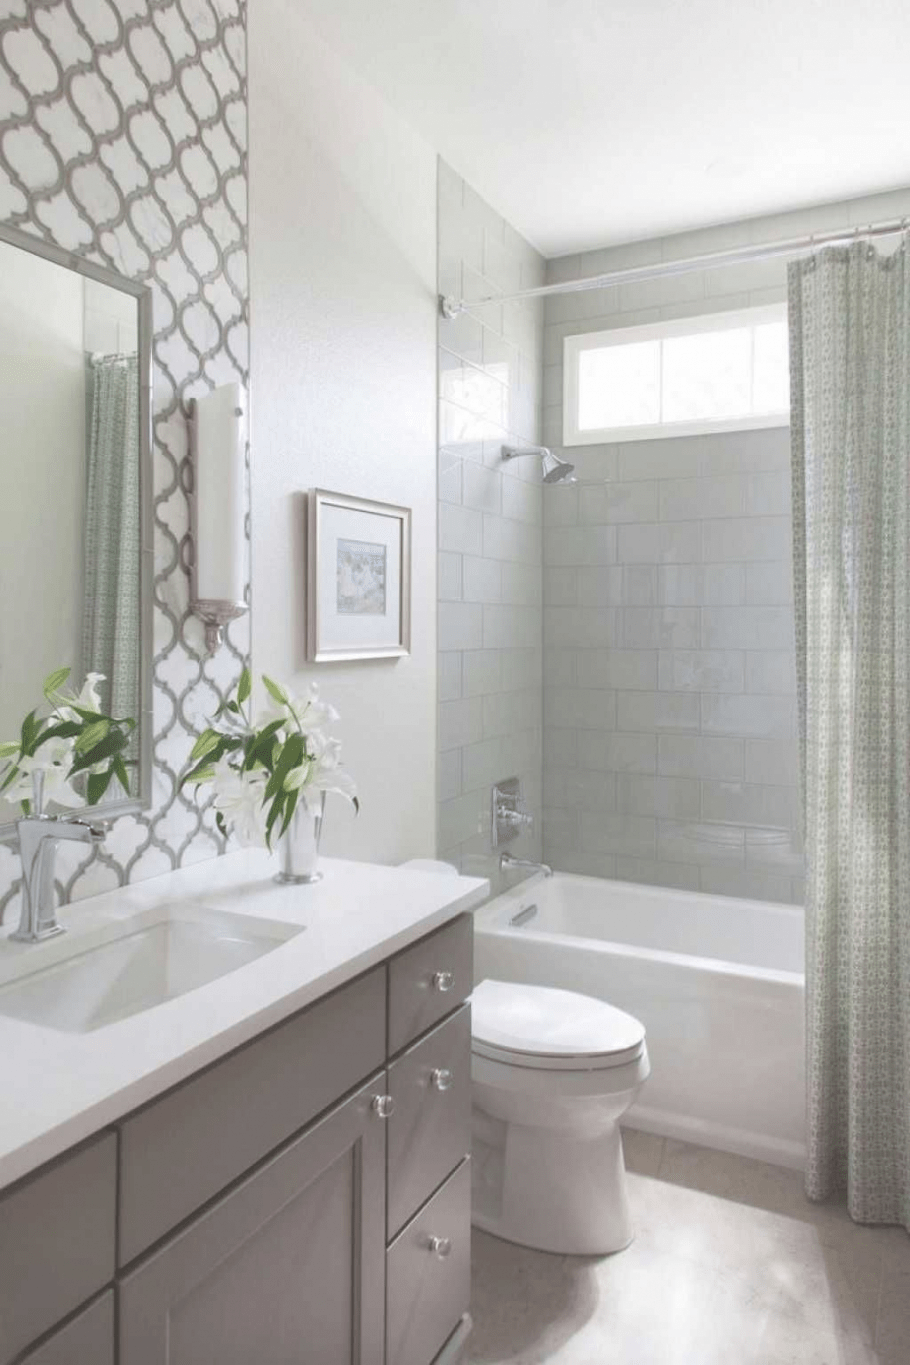 96 Models Sample Awesome Small Bathroom Ideas-9240